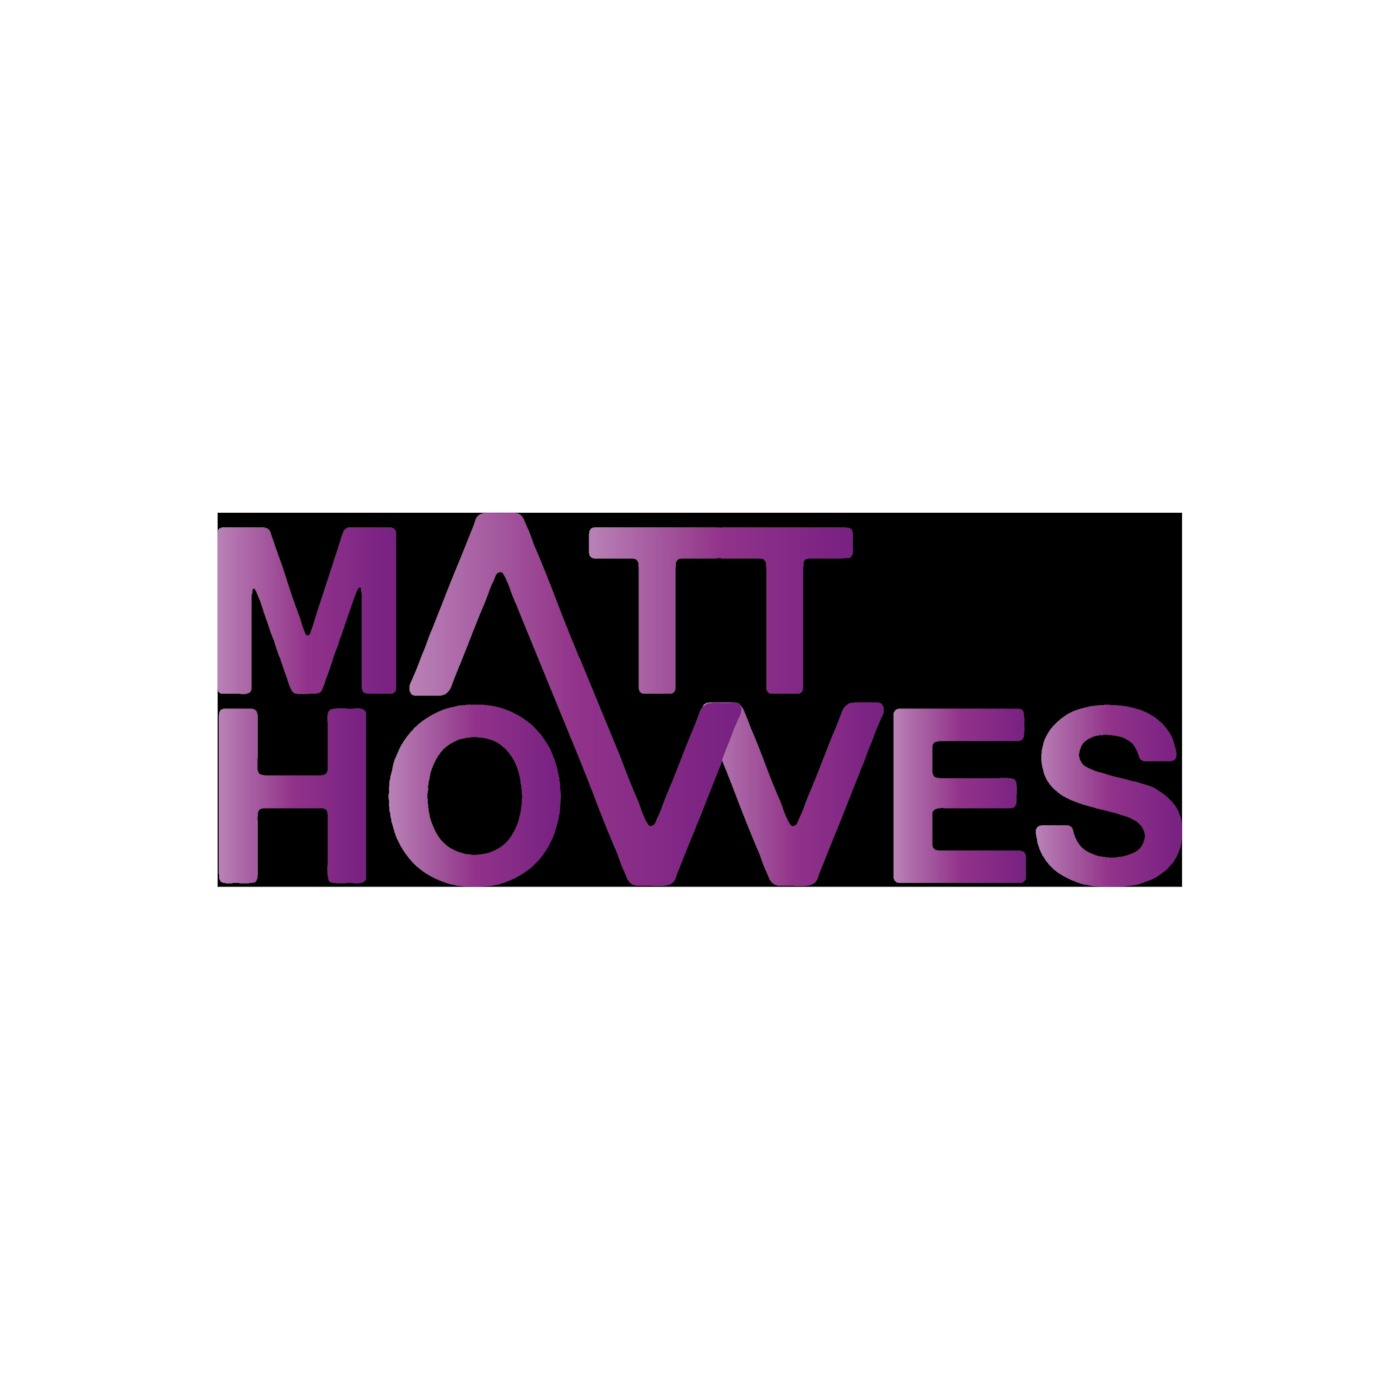 Matt Howes' Podcast